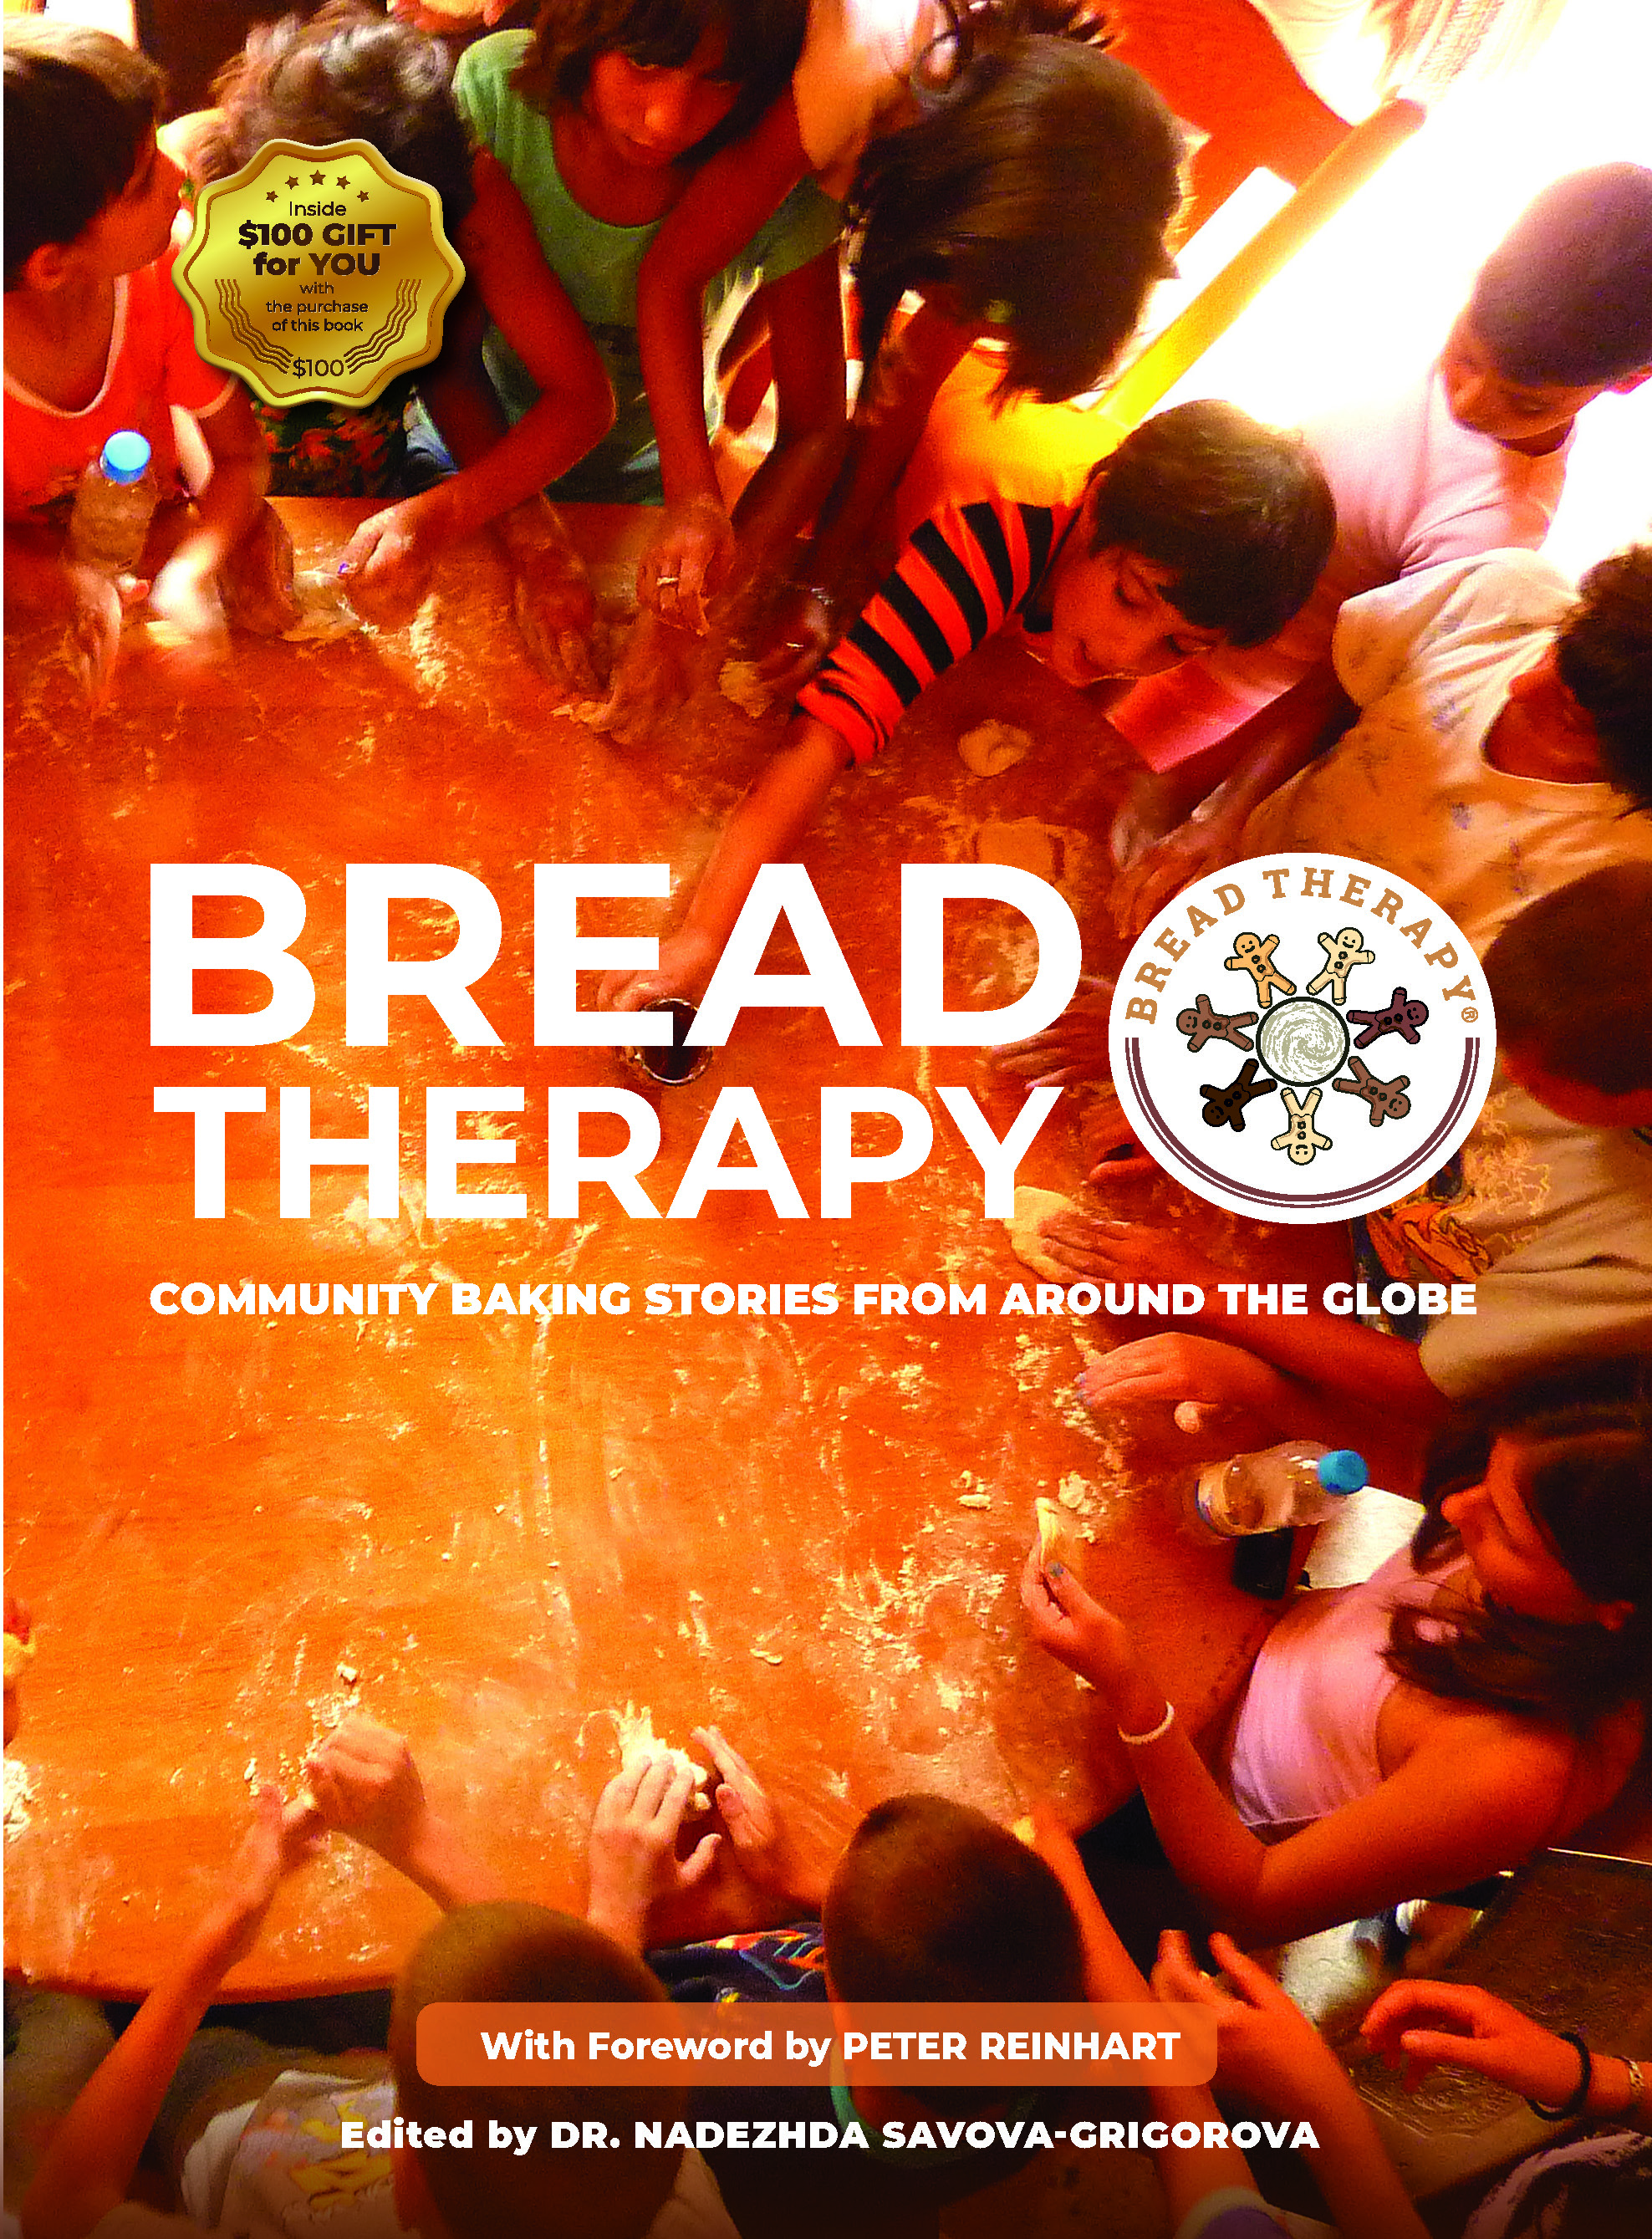 Bread Therapy: Community Baking Stories from Around the Globe